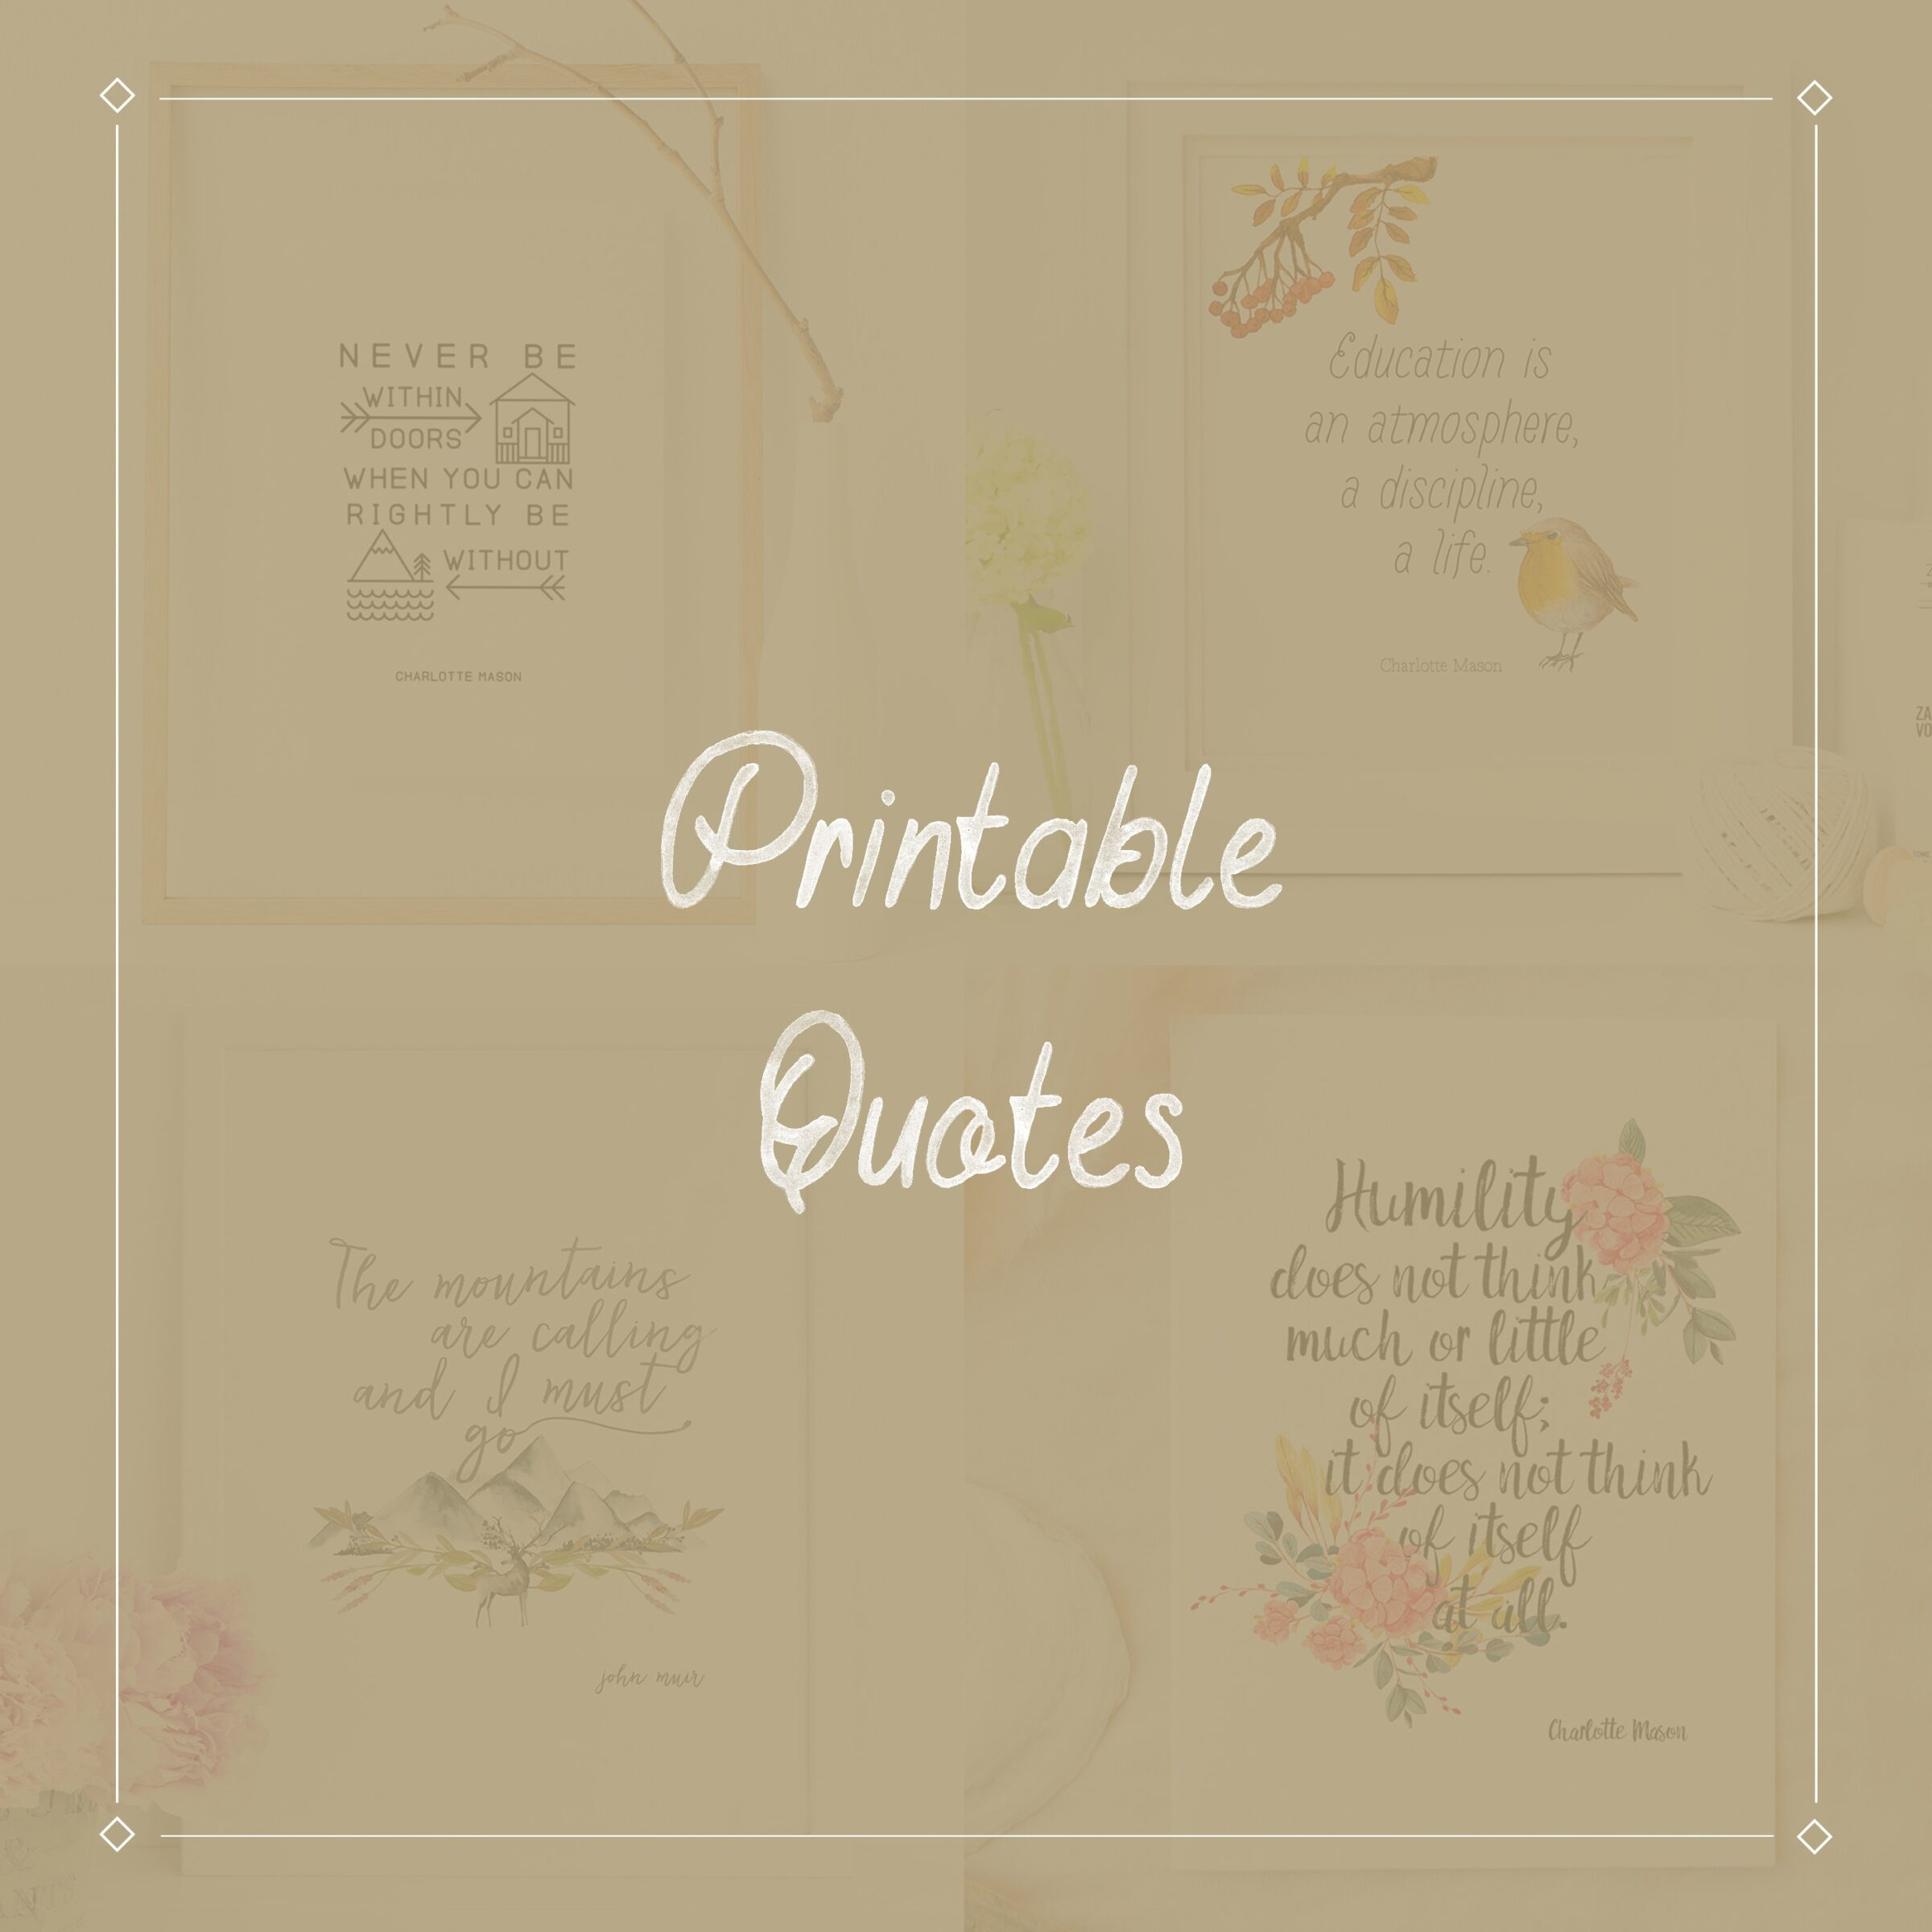 Printable Quotes - ahumbleplace.com